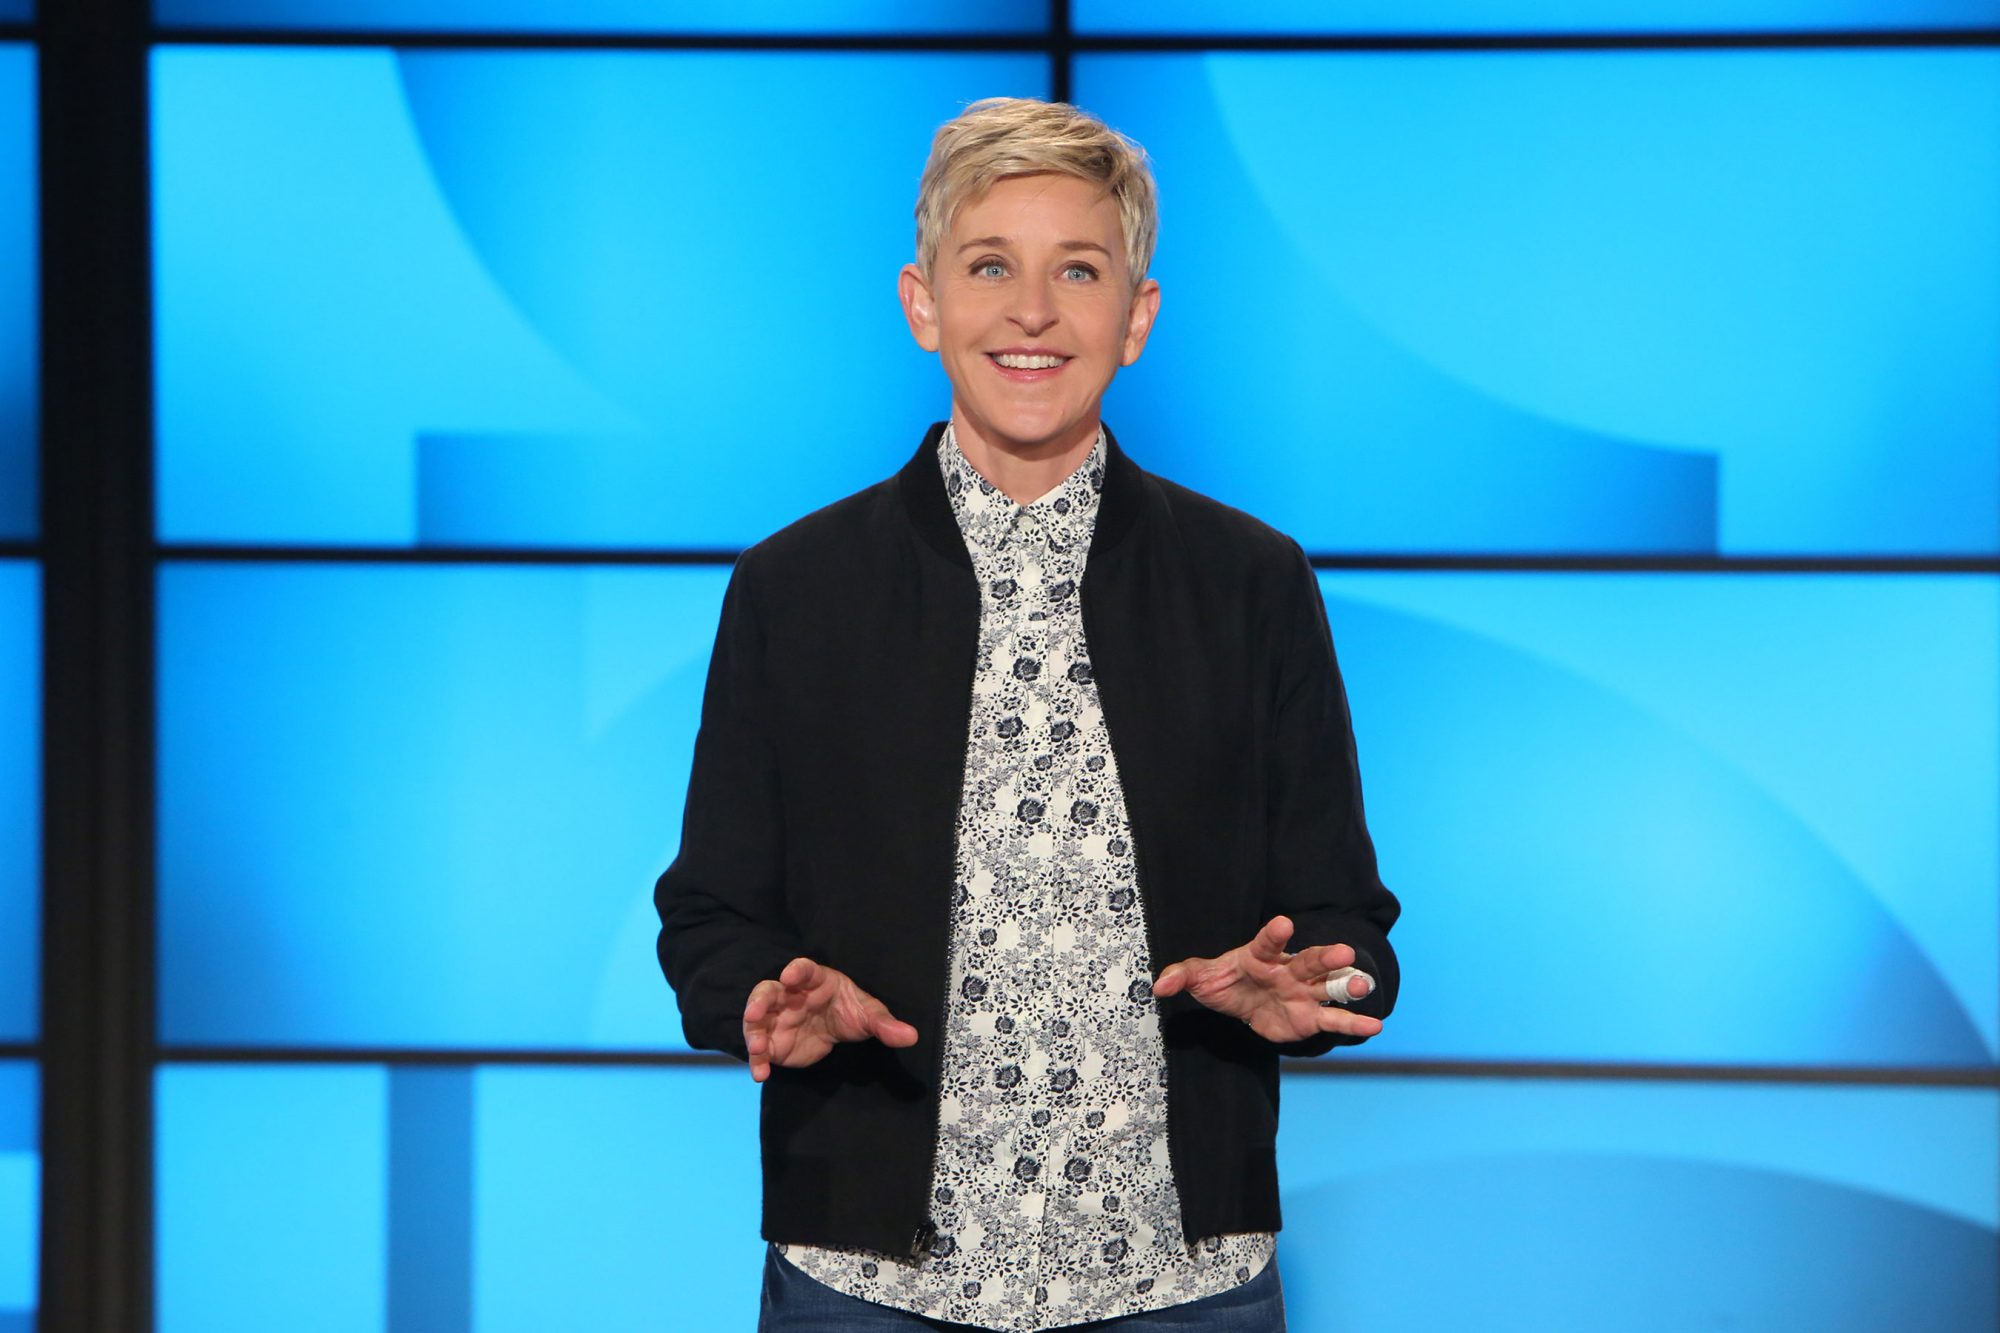 Who knew that 'The Ellen DeGeneres Show' tickets came with so many rules when you're in the audience? Let's take a look at the crazy rules.